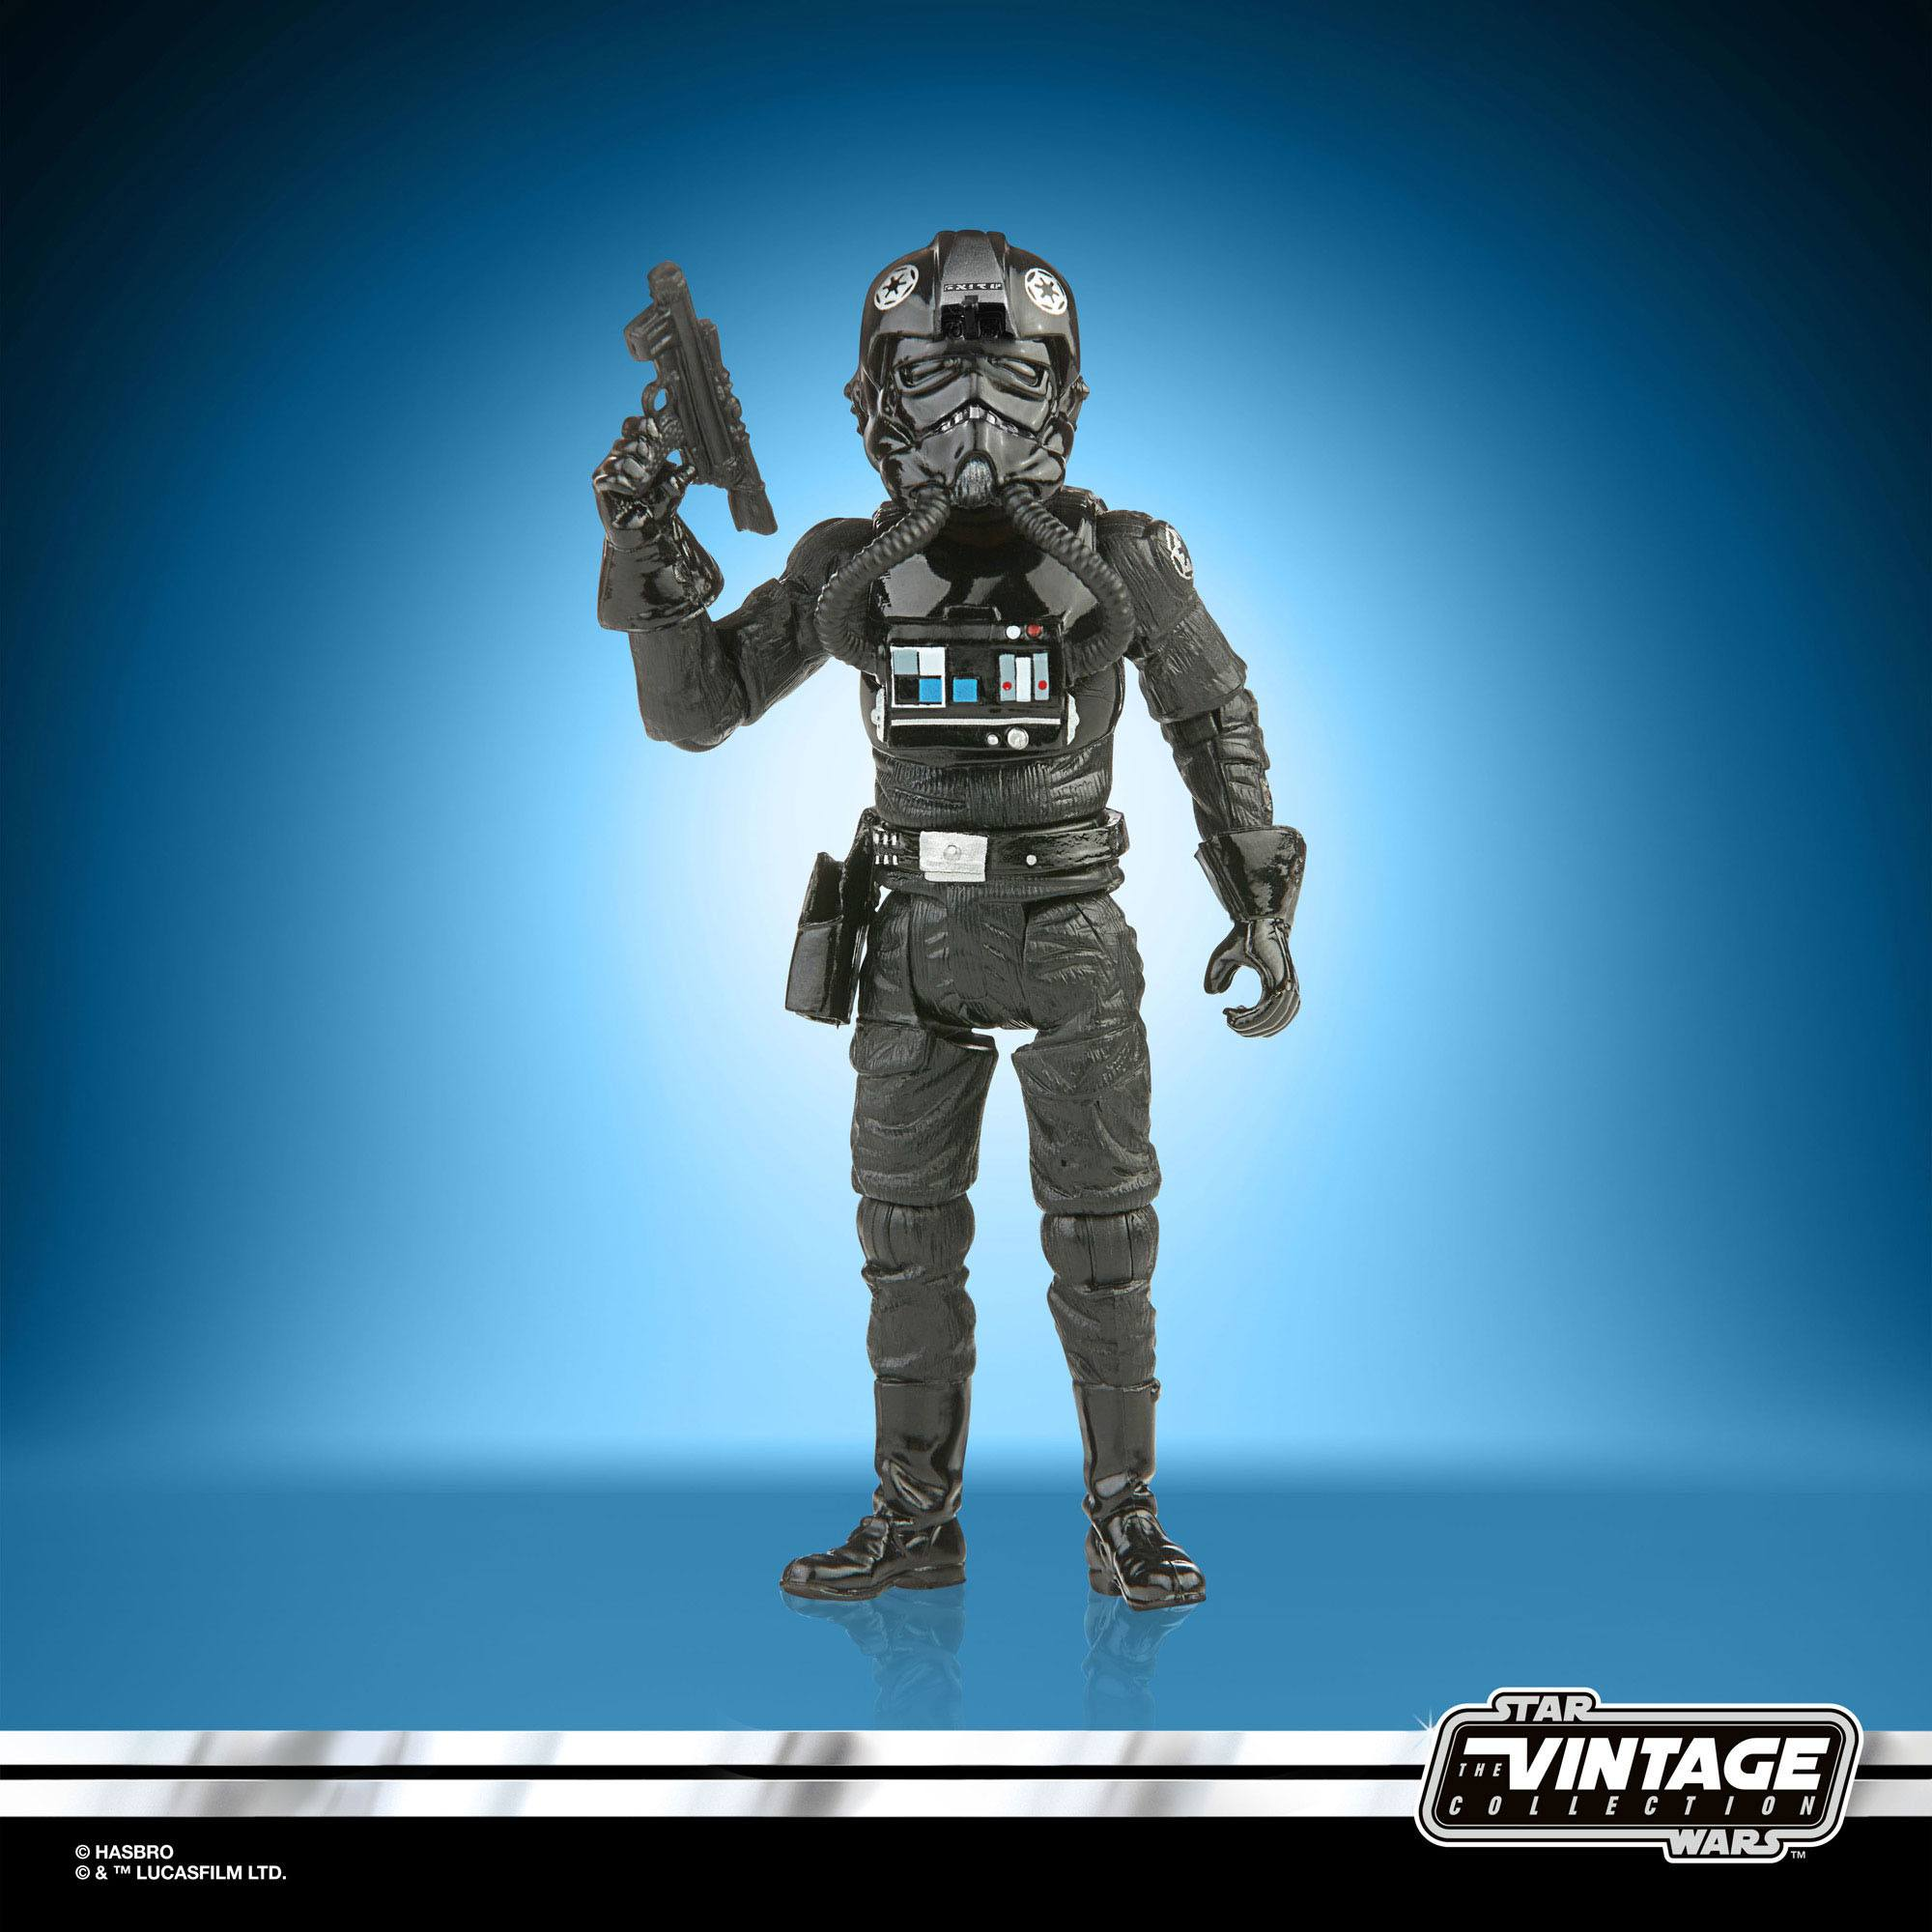 Star Wars The Vintage Collection Tie Fighter Pilot F1883 5010993813292